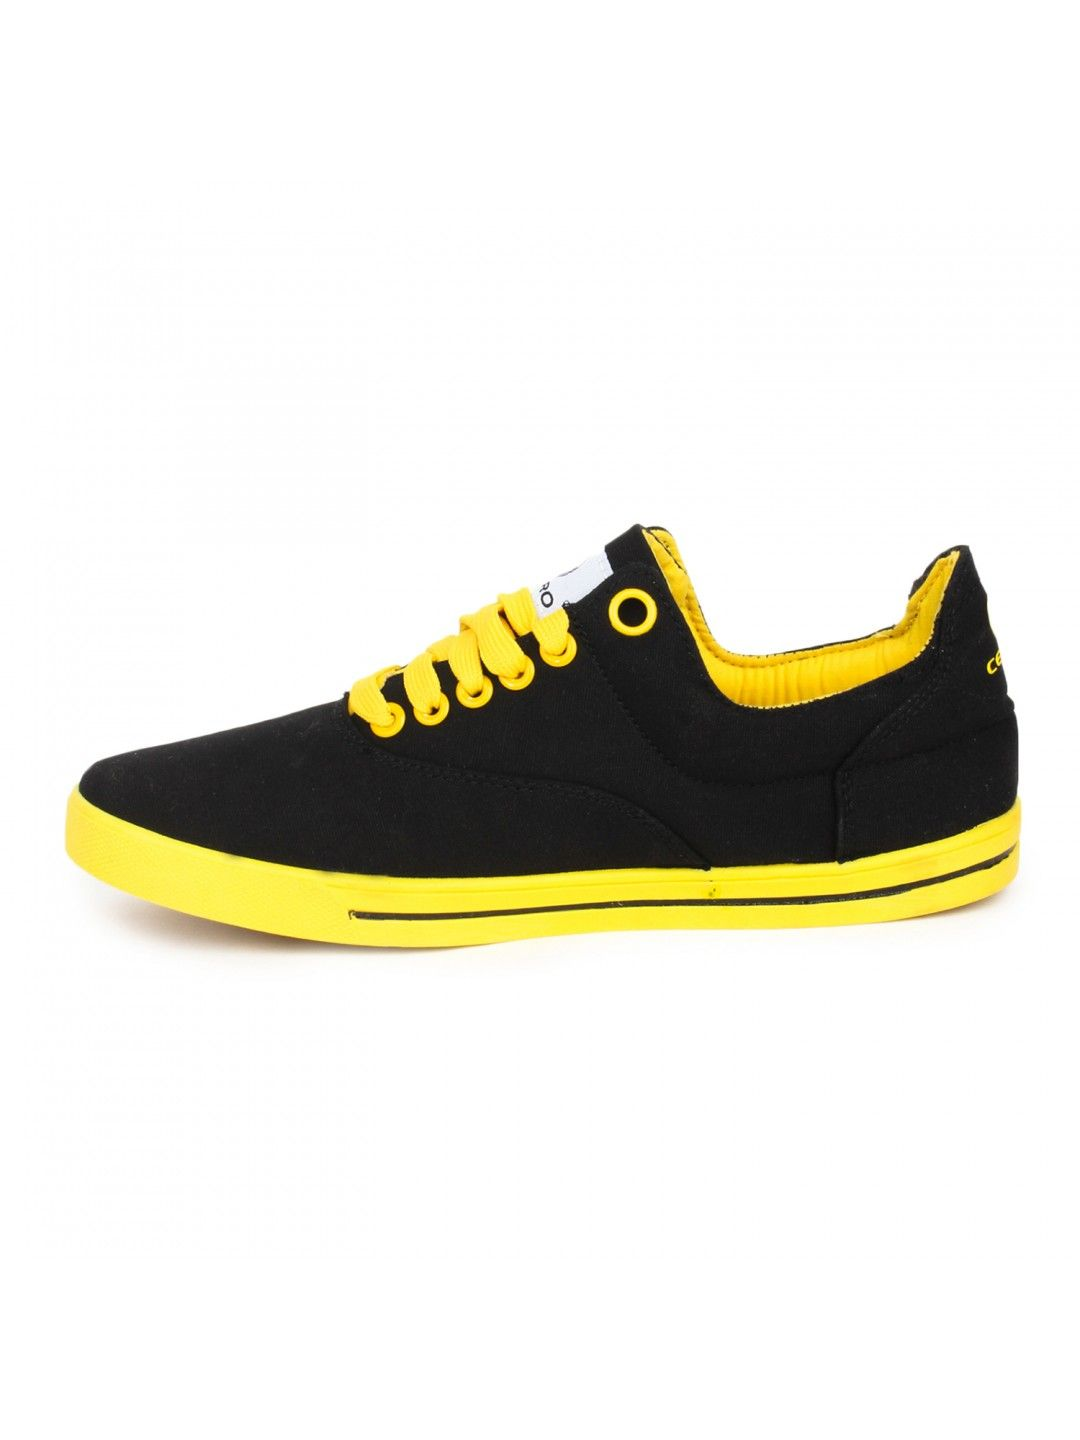 5f388782e55 Yellow Black Casual Shoes Fun for Men - Buy Online Yellow Black Casual Shoes  for Men at best price in india. Shoes are known for their fun